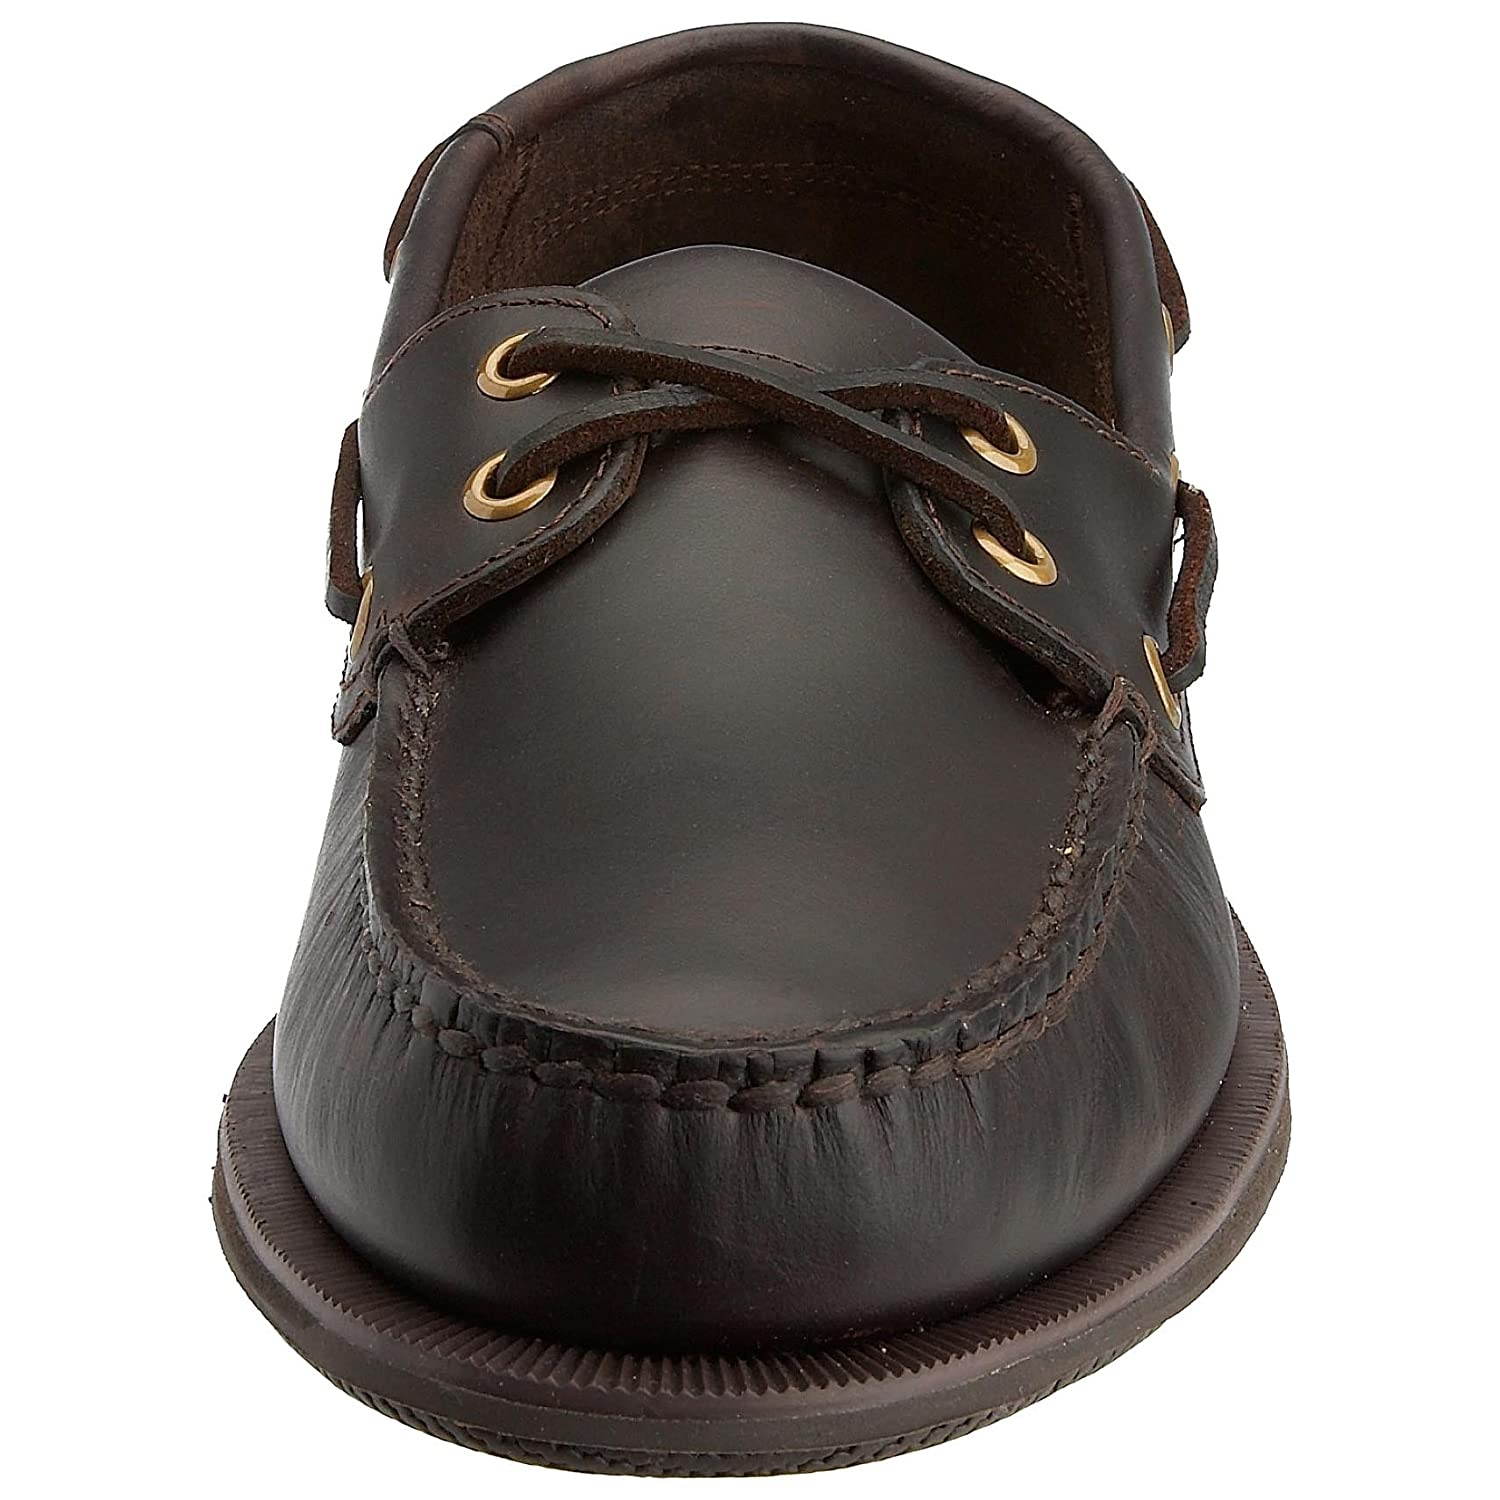 Rockport Ports Ports Ports of Call Perth K54692, Herren Stiefelschuhe, Braun (DK braun PULL UP), EU 44 (UK 9.5) d2e94a